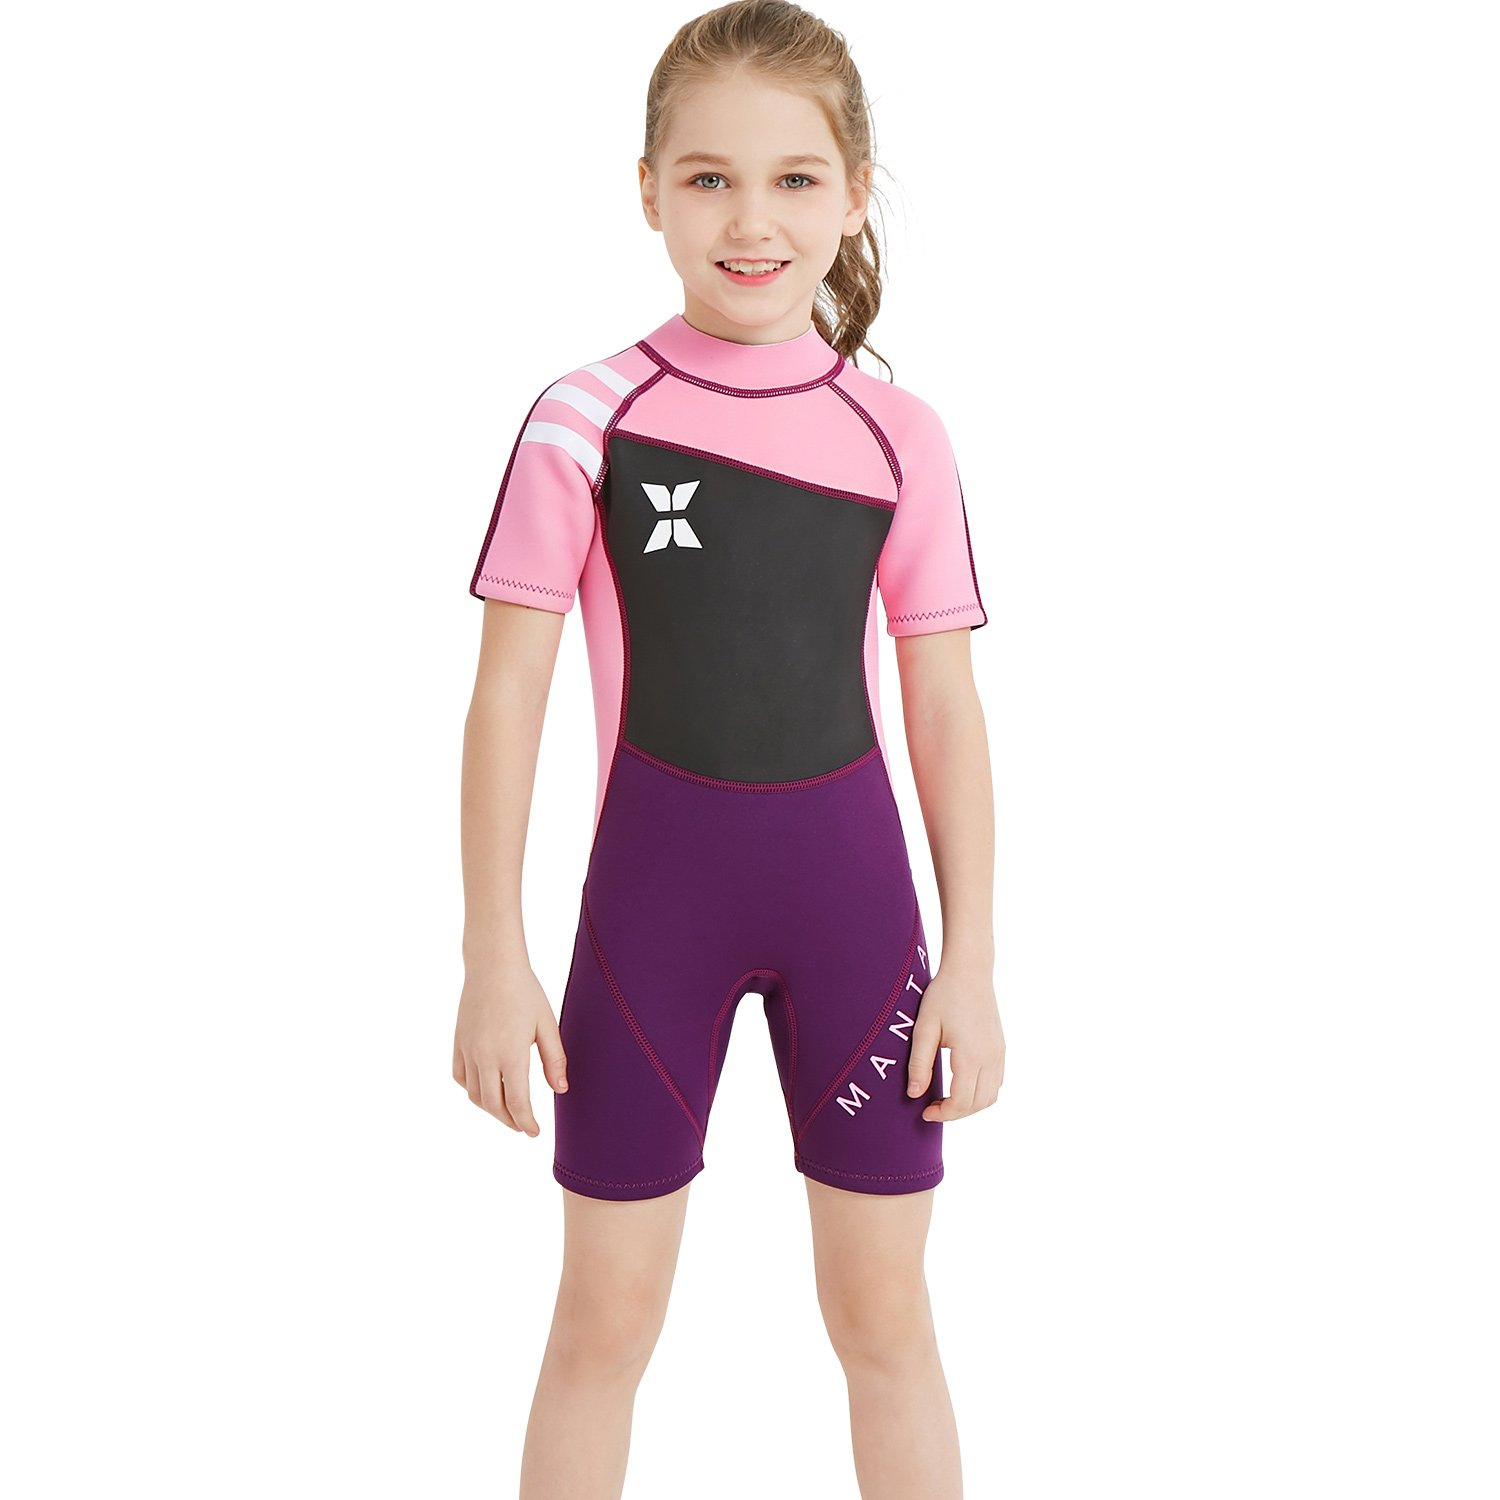 Dark Lightning Child Swimming Shirt, Kids Wetsuit Neoprene Shorty Suit, Girls One Piece Fishing Suit, 2mm Thermal Swimsuit for Children Scuba Diving, Surfing, Paddling, Swimming, Pink L Size by Dark Lightning